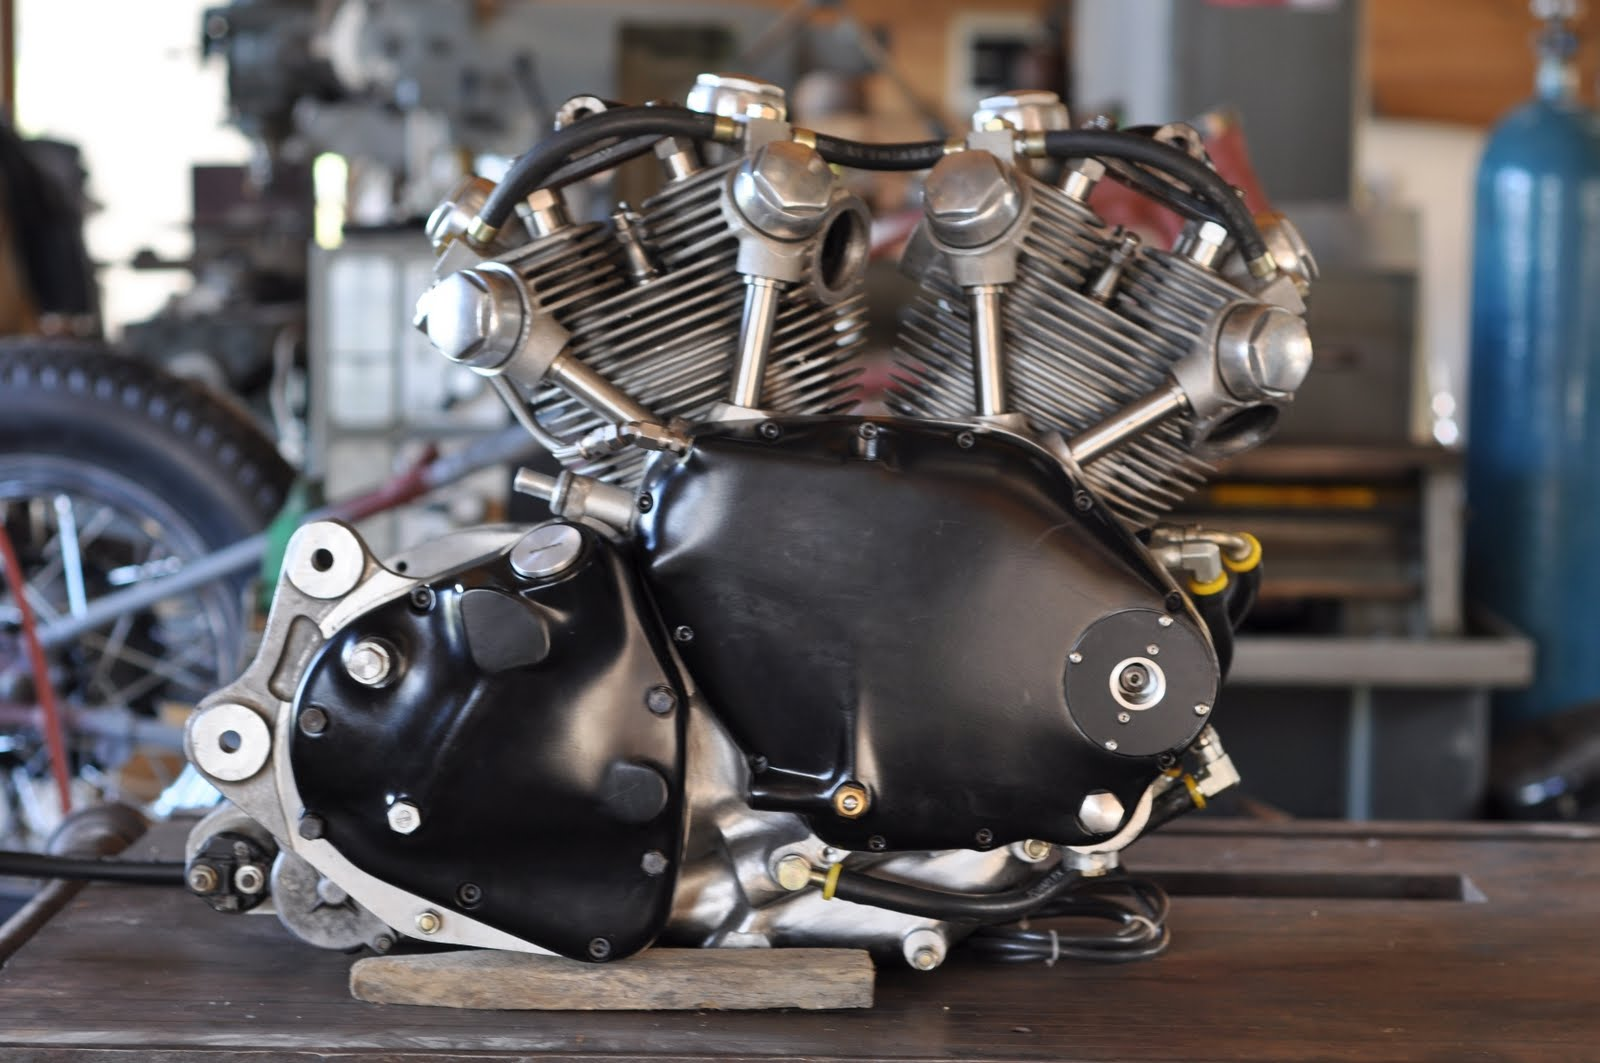 Return of the Cafe Racers - Classic Motorcycle engines